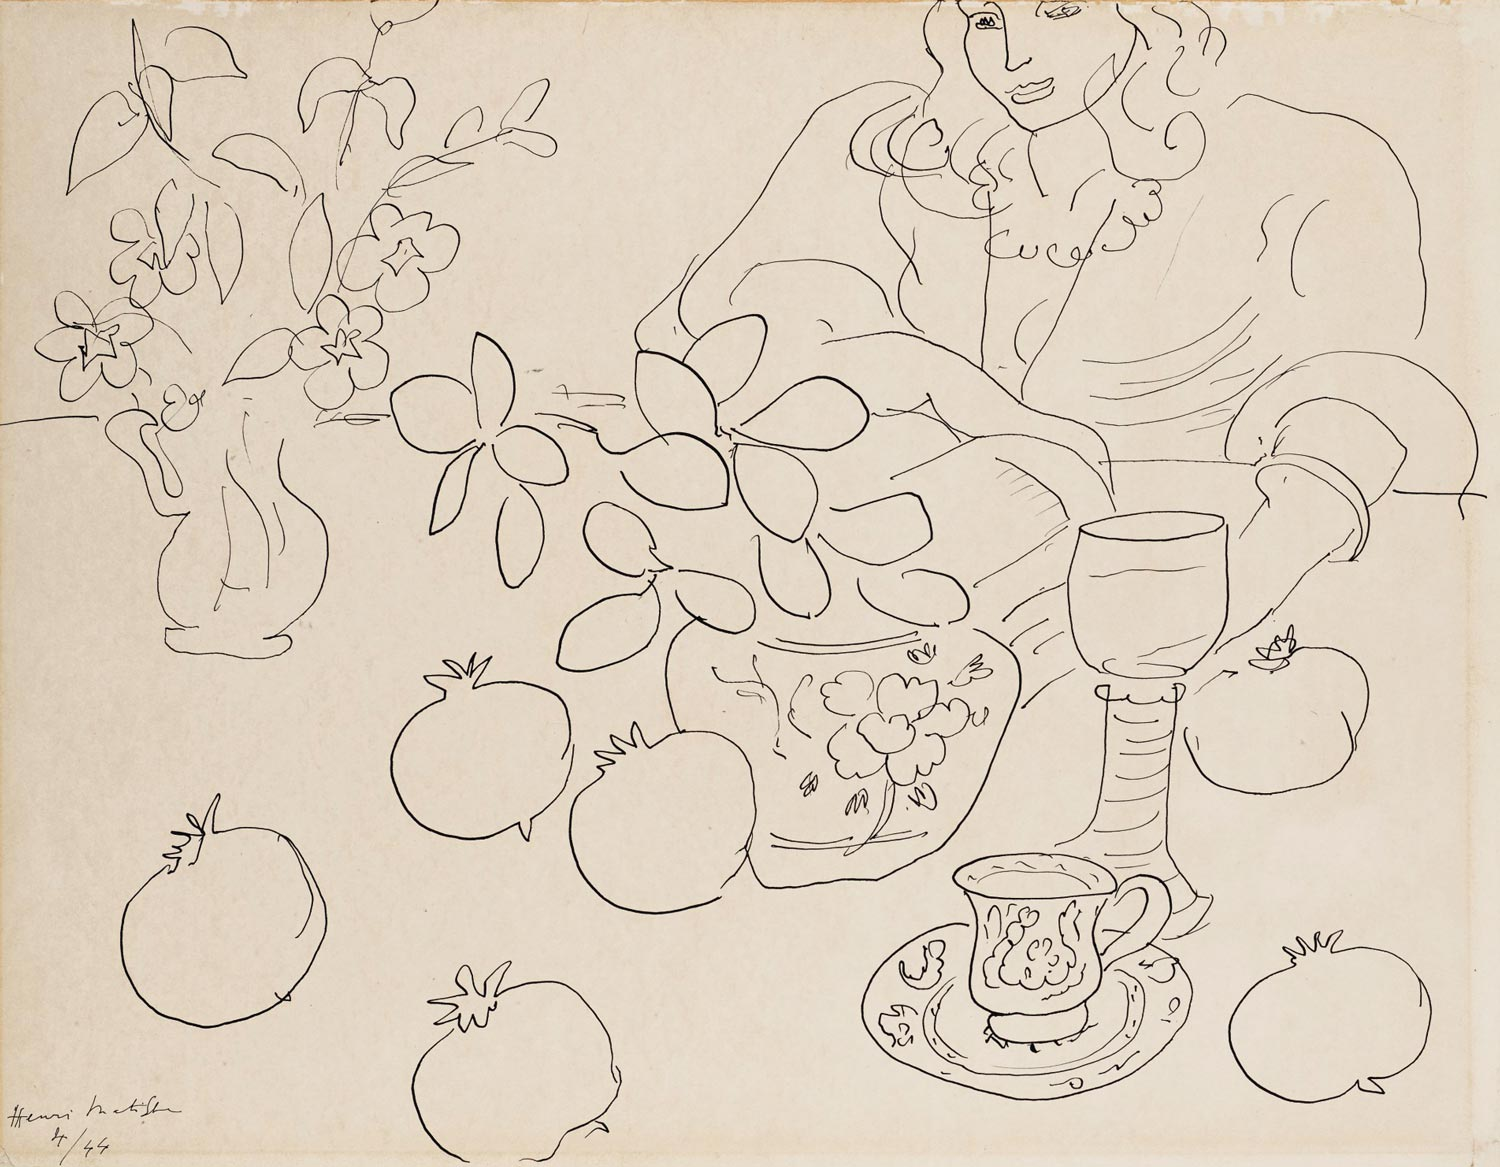 Henri Matisse (1869-1954), Scène dintérieur, Drawn in April 1944. Estimate £250,000-350,000. This work is offered in the Impressionist & Modern Art Works on Paper Sale on 19 June at Christies London.